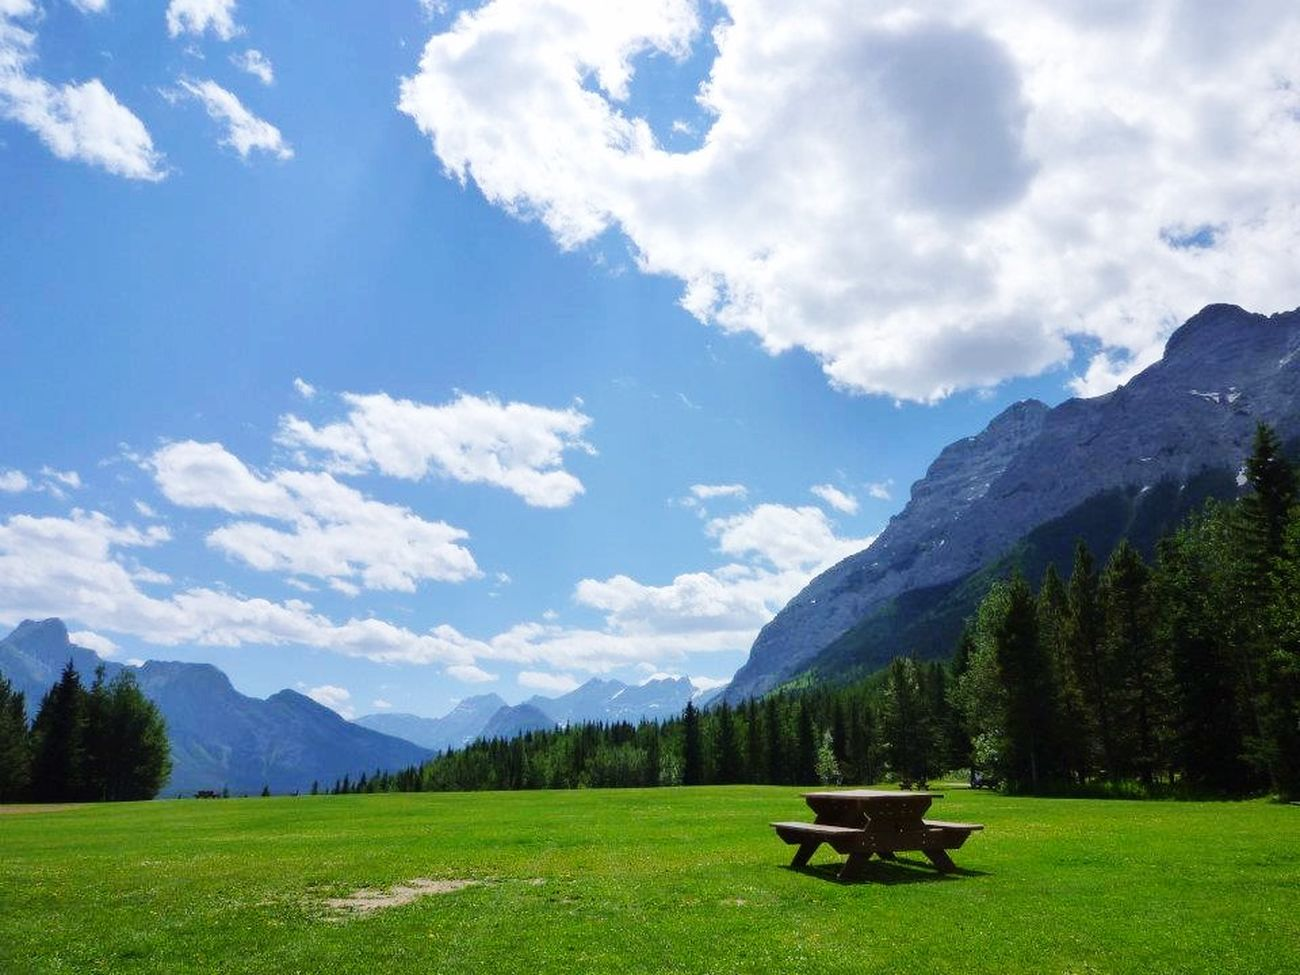 What A Sky! What A Wonderful World What A Beautiful Day Landscape Blue Green Kananaskis Alberta in Canada